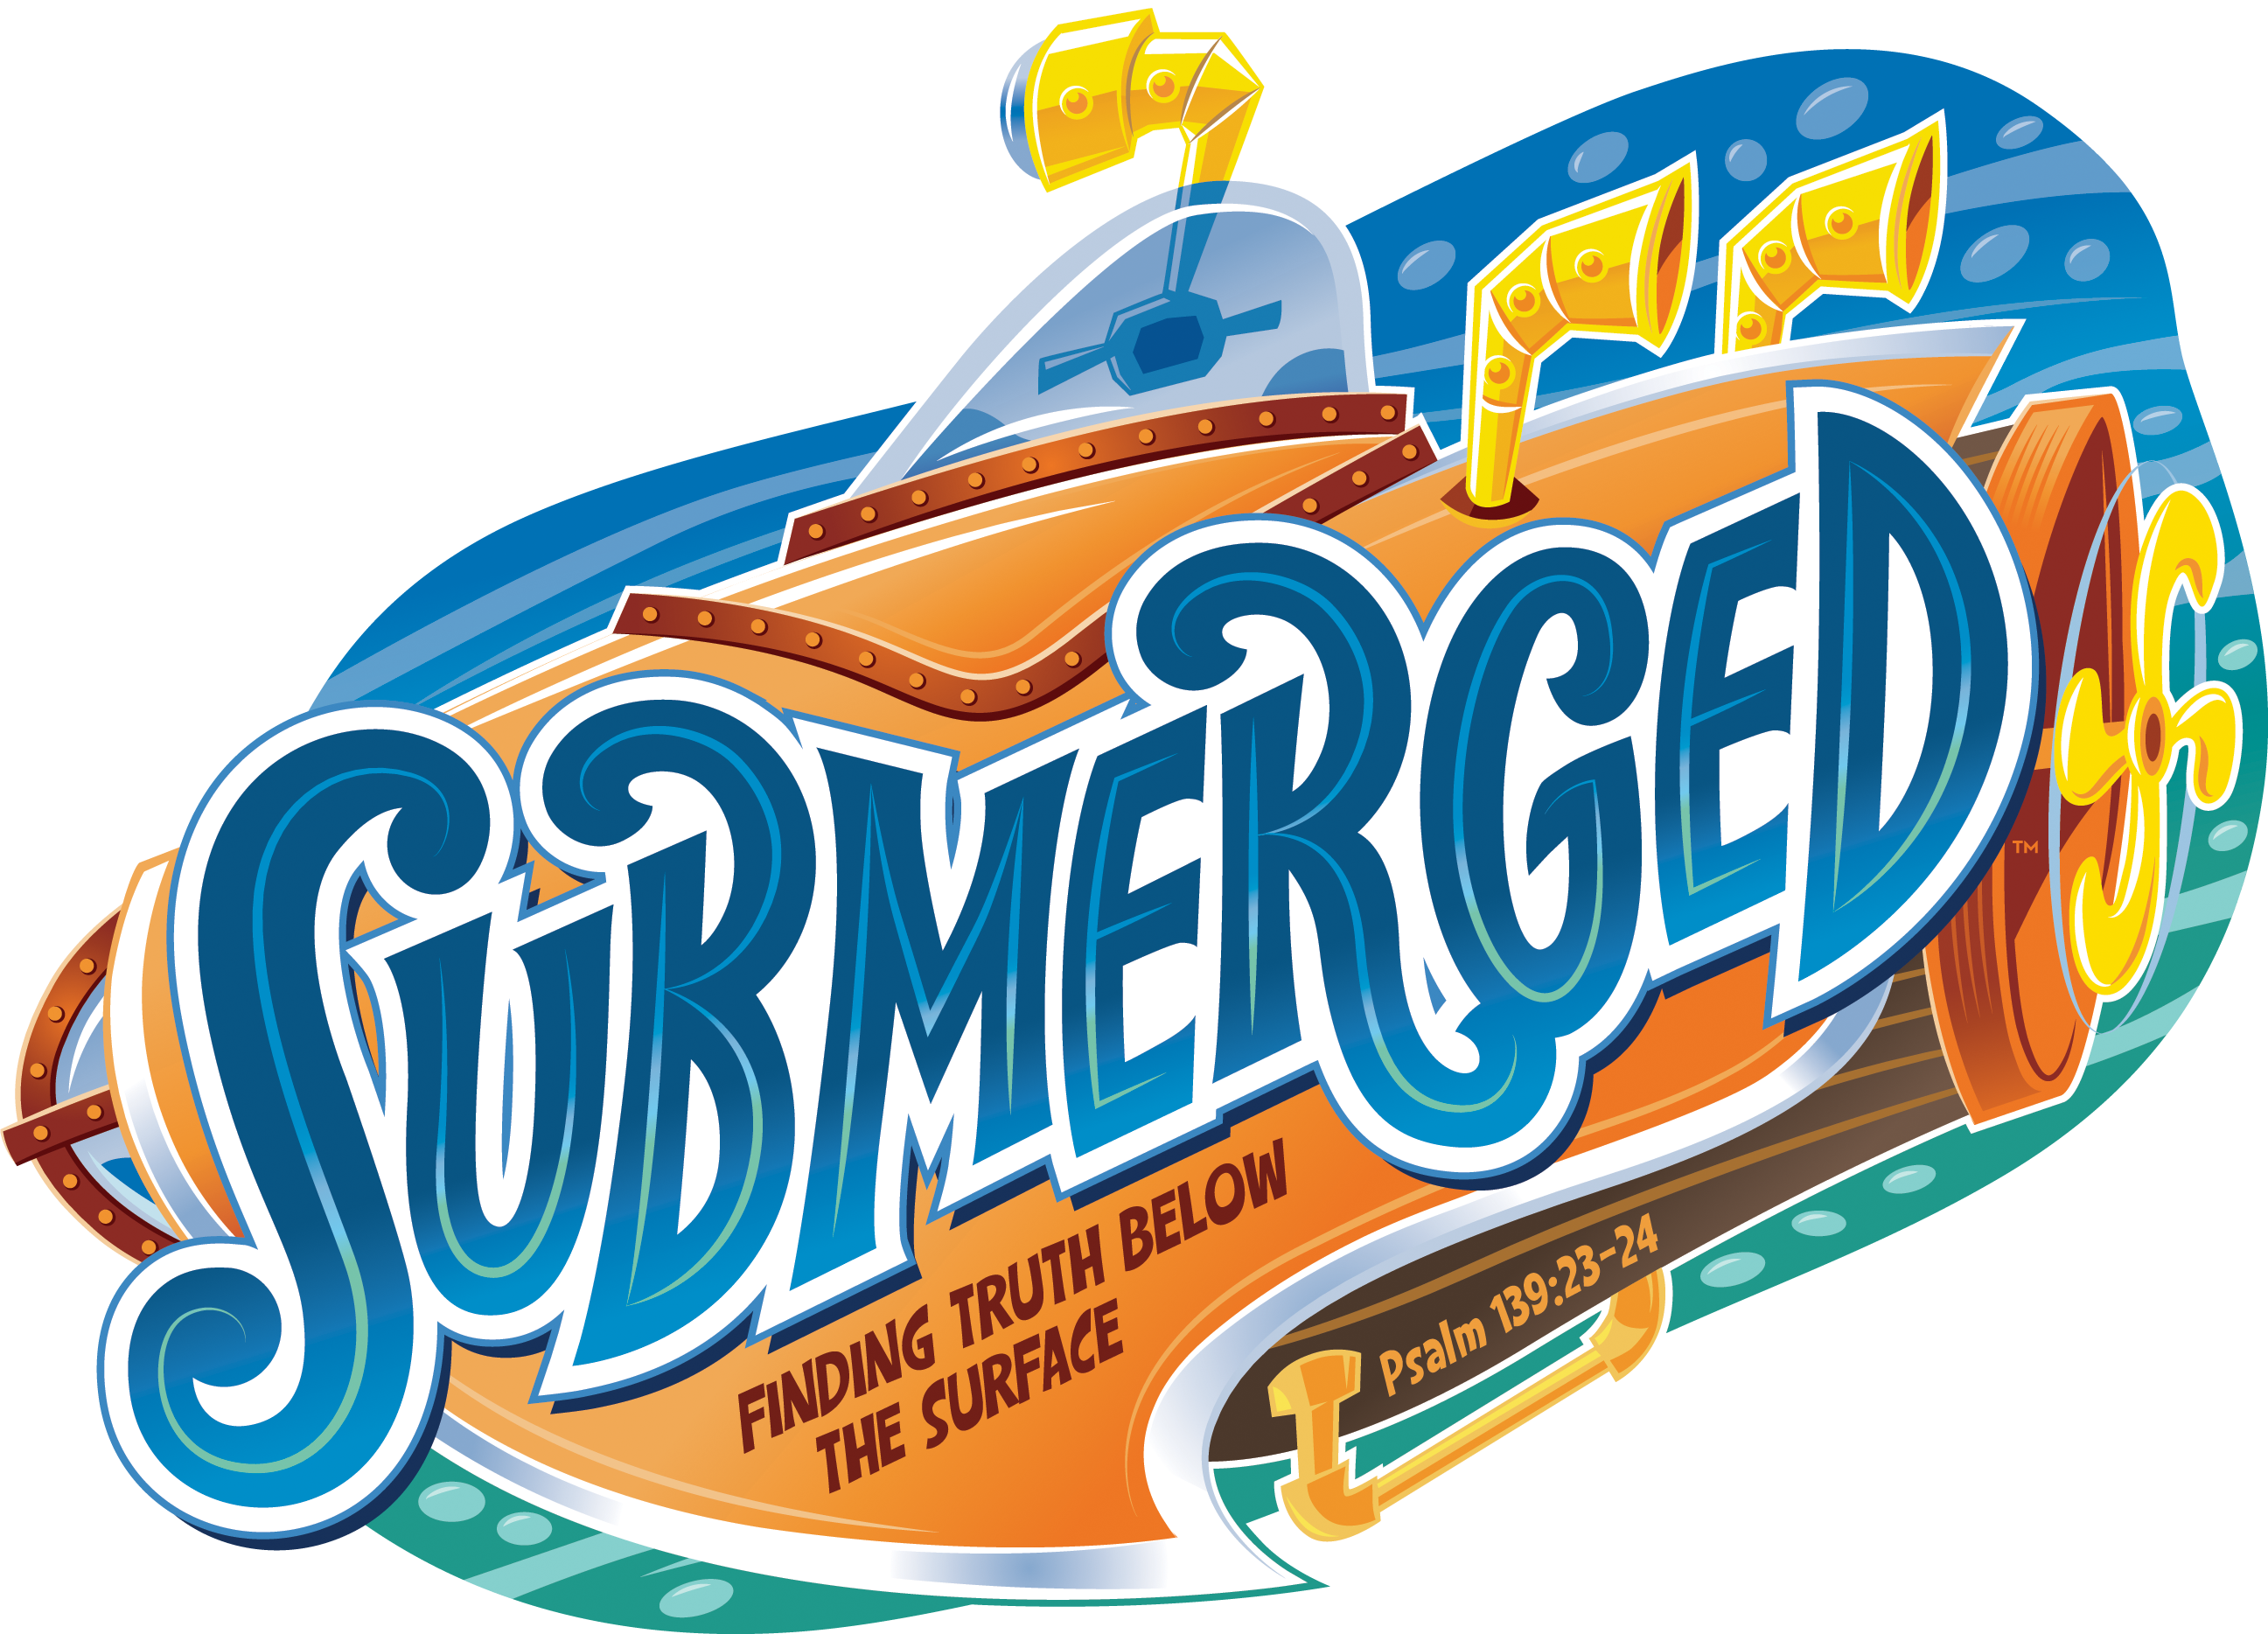 Take the plunge vbs clipart clip free library Upcoming Events | VBS Clinic | Brunswick Baptist Association clip free library